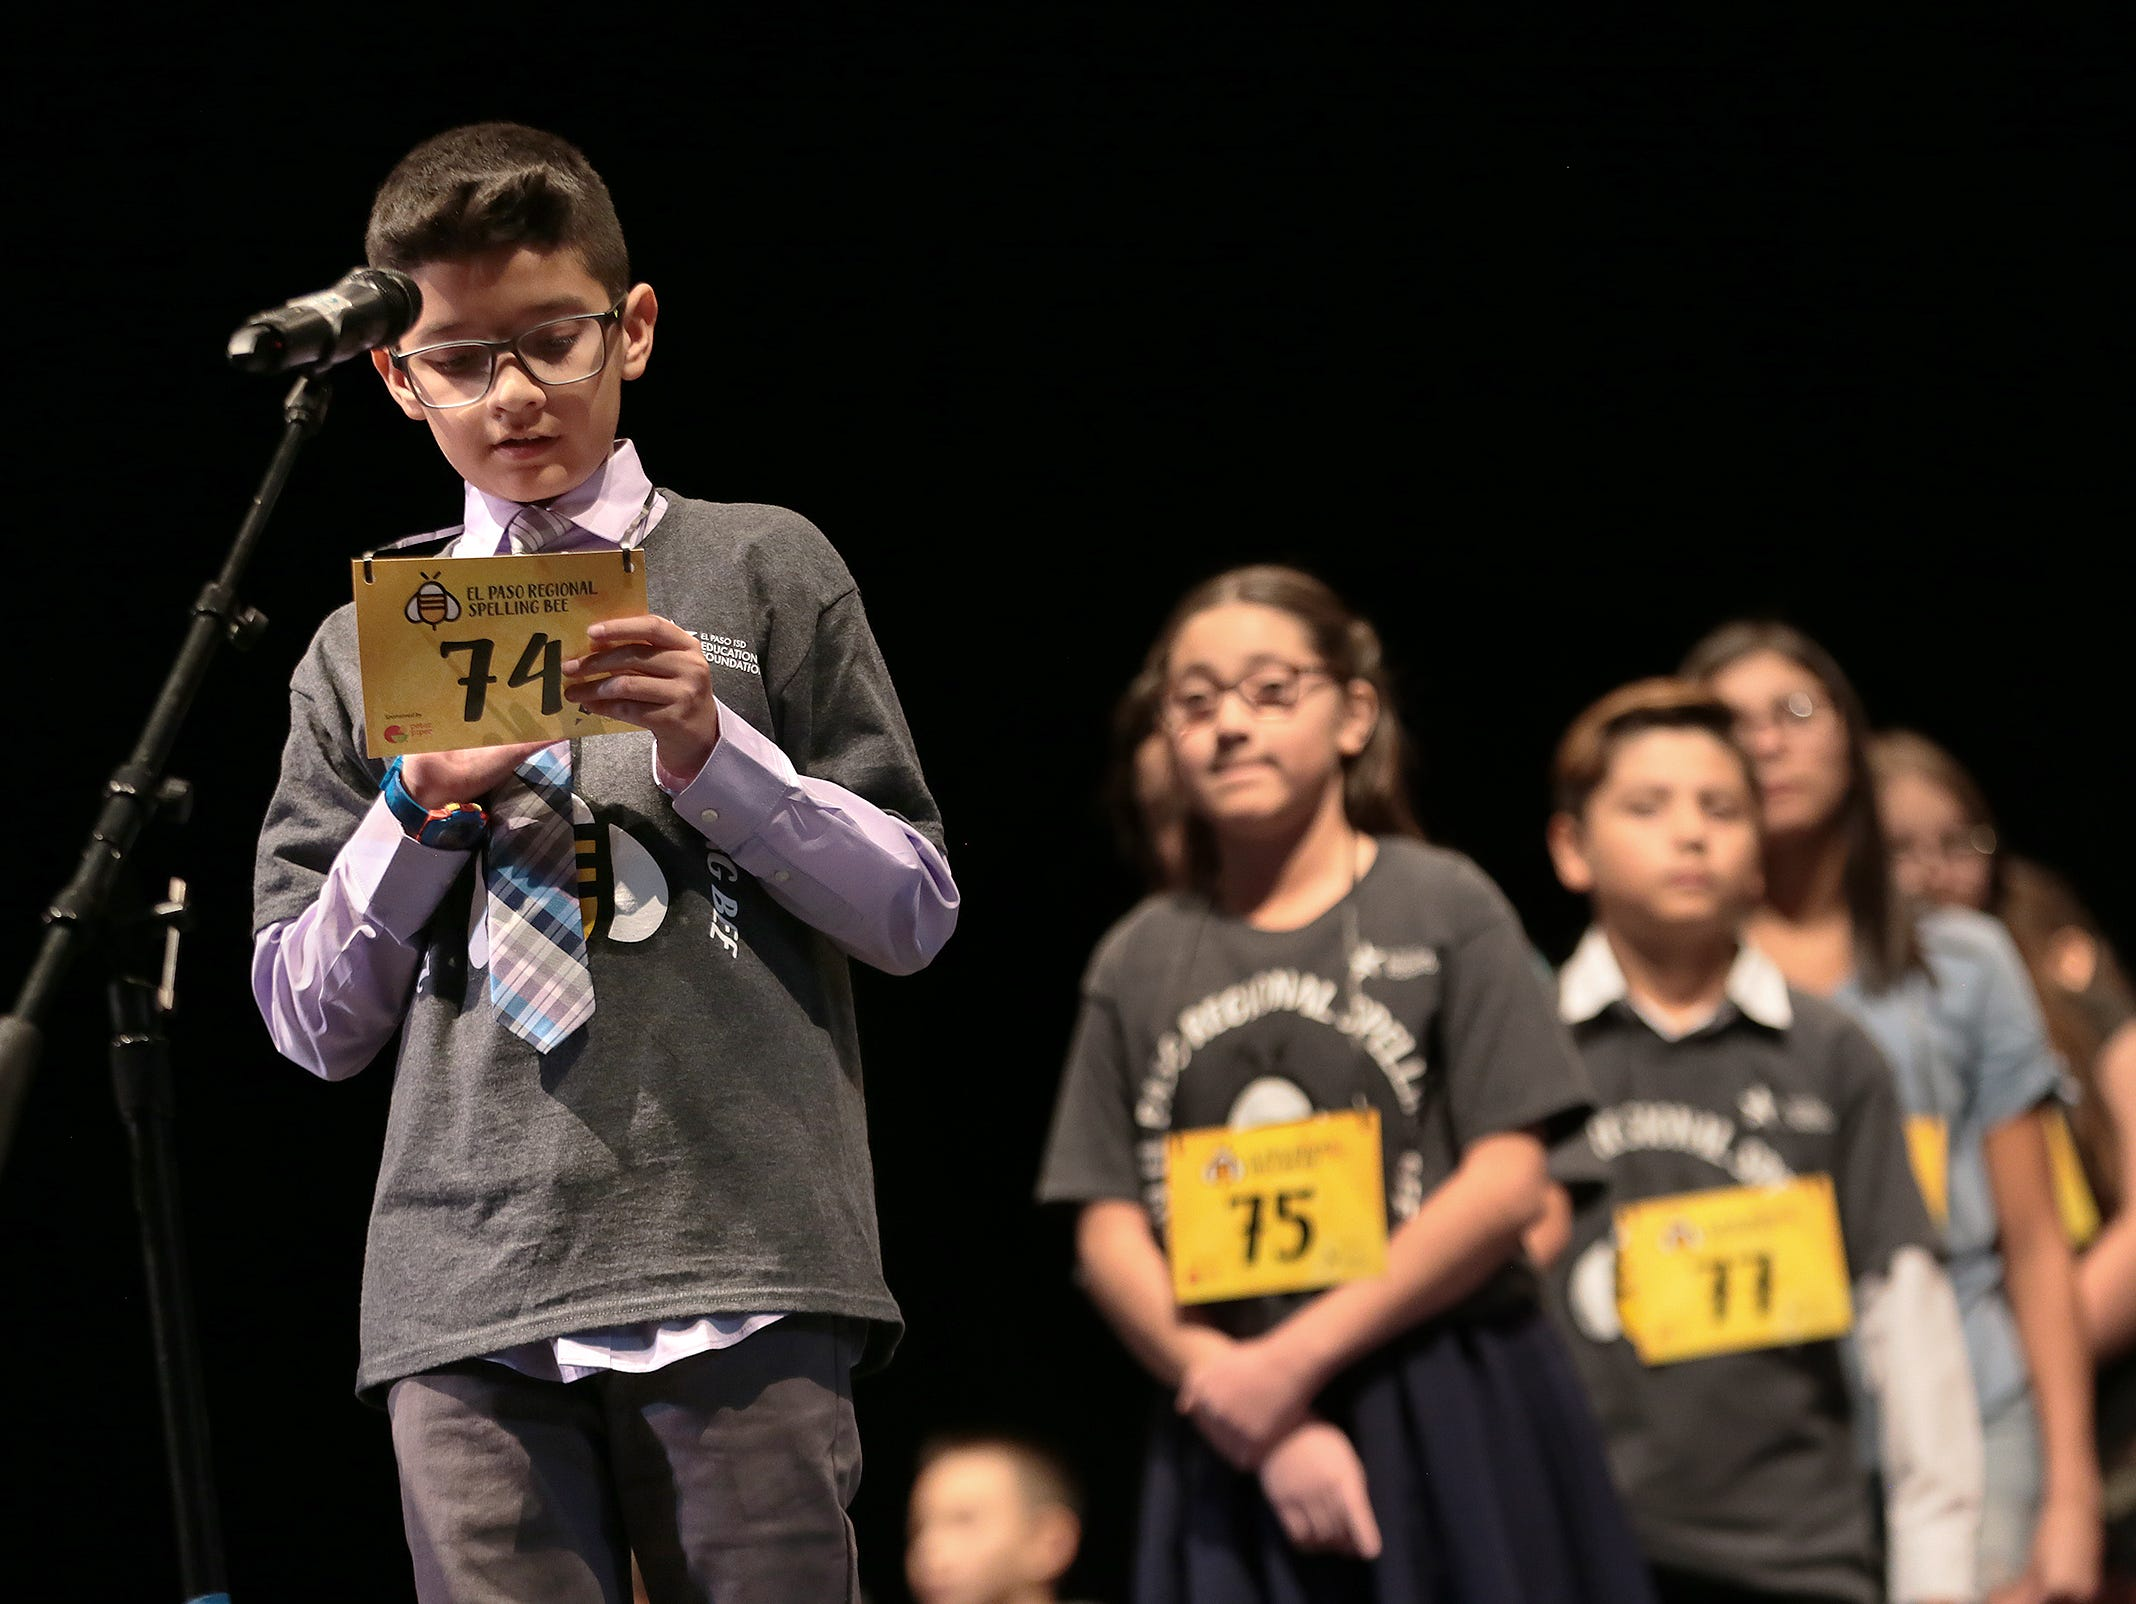 Andy Diaz of Mission Valley Elementary School spells on the back of his number at the 2019 El Paso Regional Spelling Bee Friday at Bowie High School.